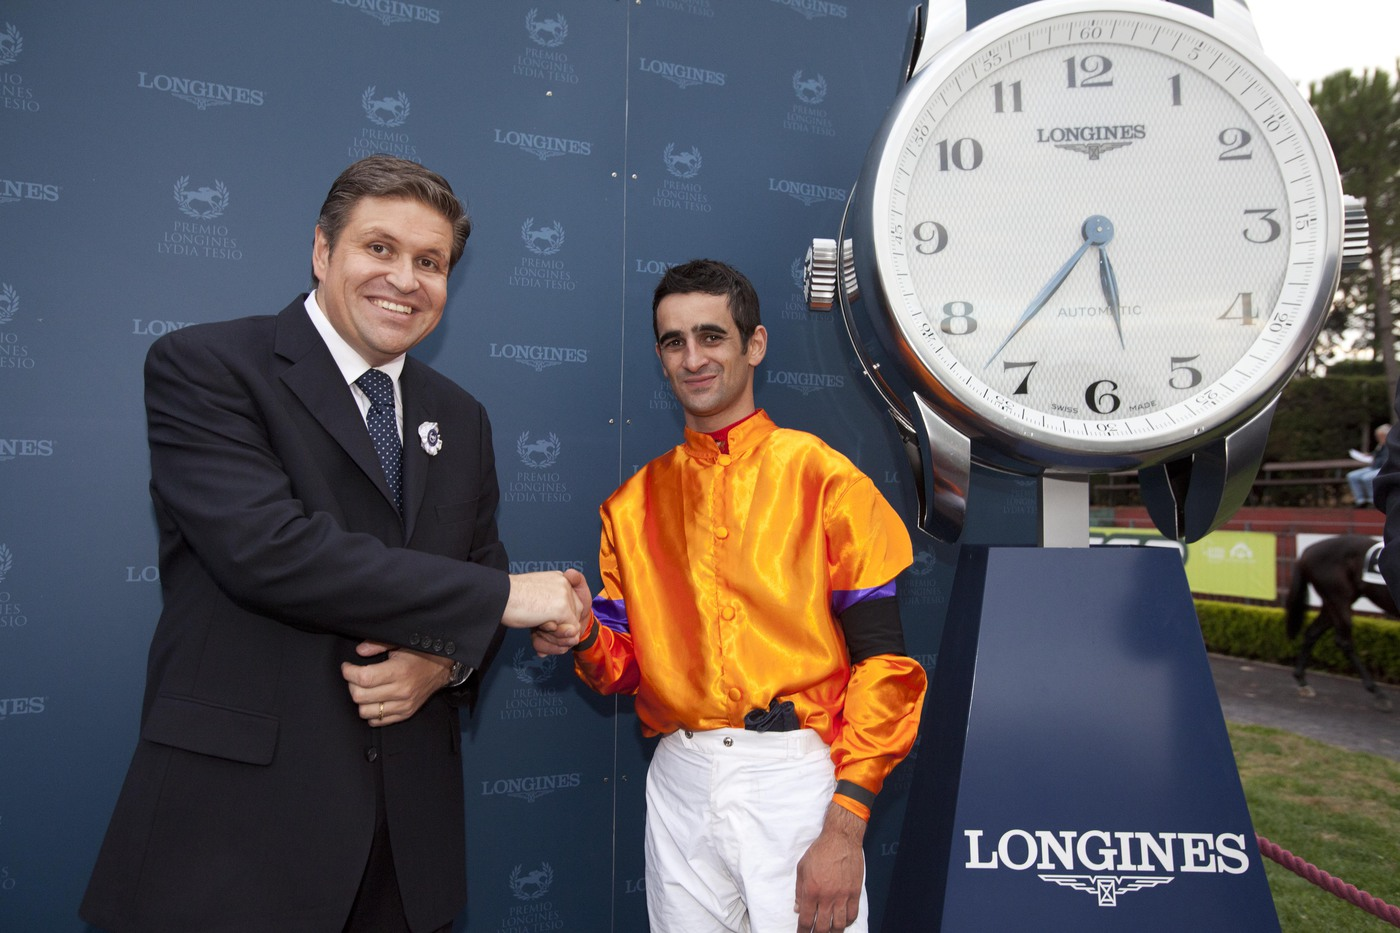 Longines Flat Racing Event: Fabio Branca wins the Grand Prix Longines Lydia Tesio on Quiza Quiza Quiza 5